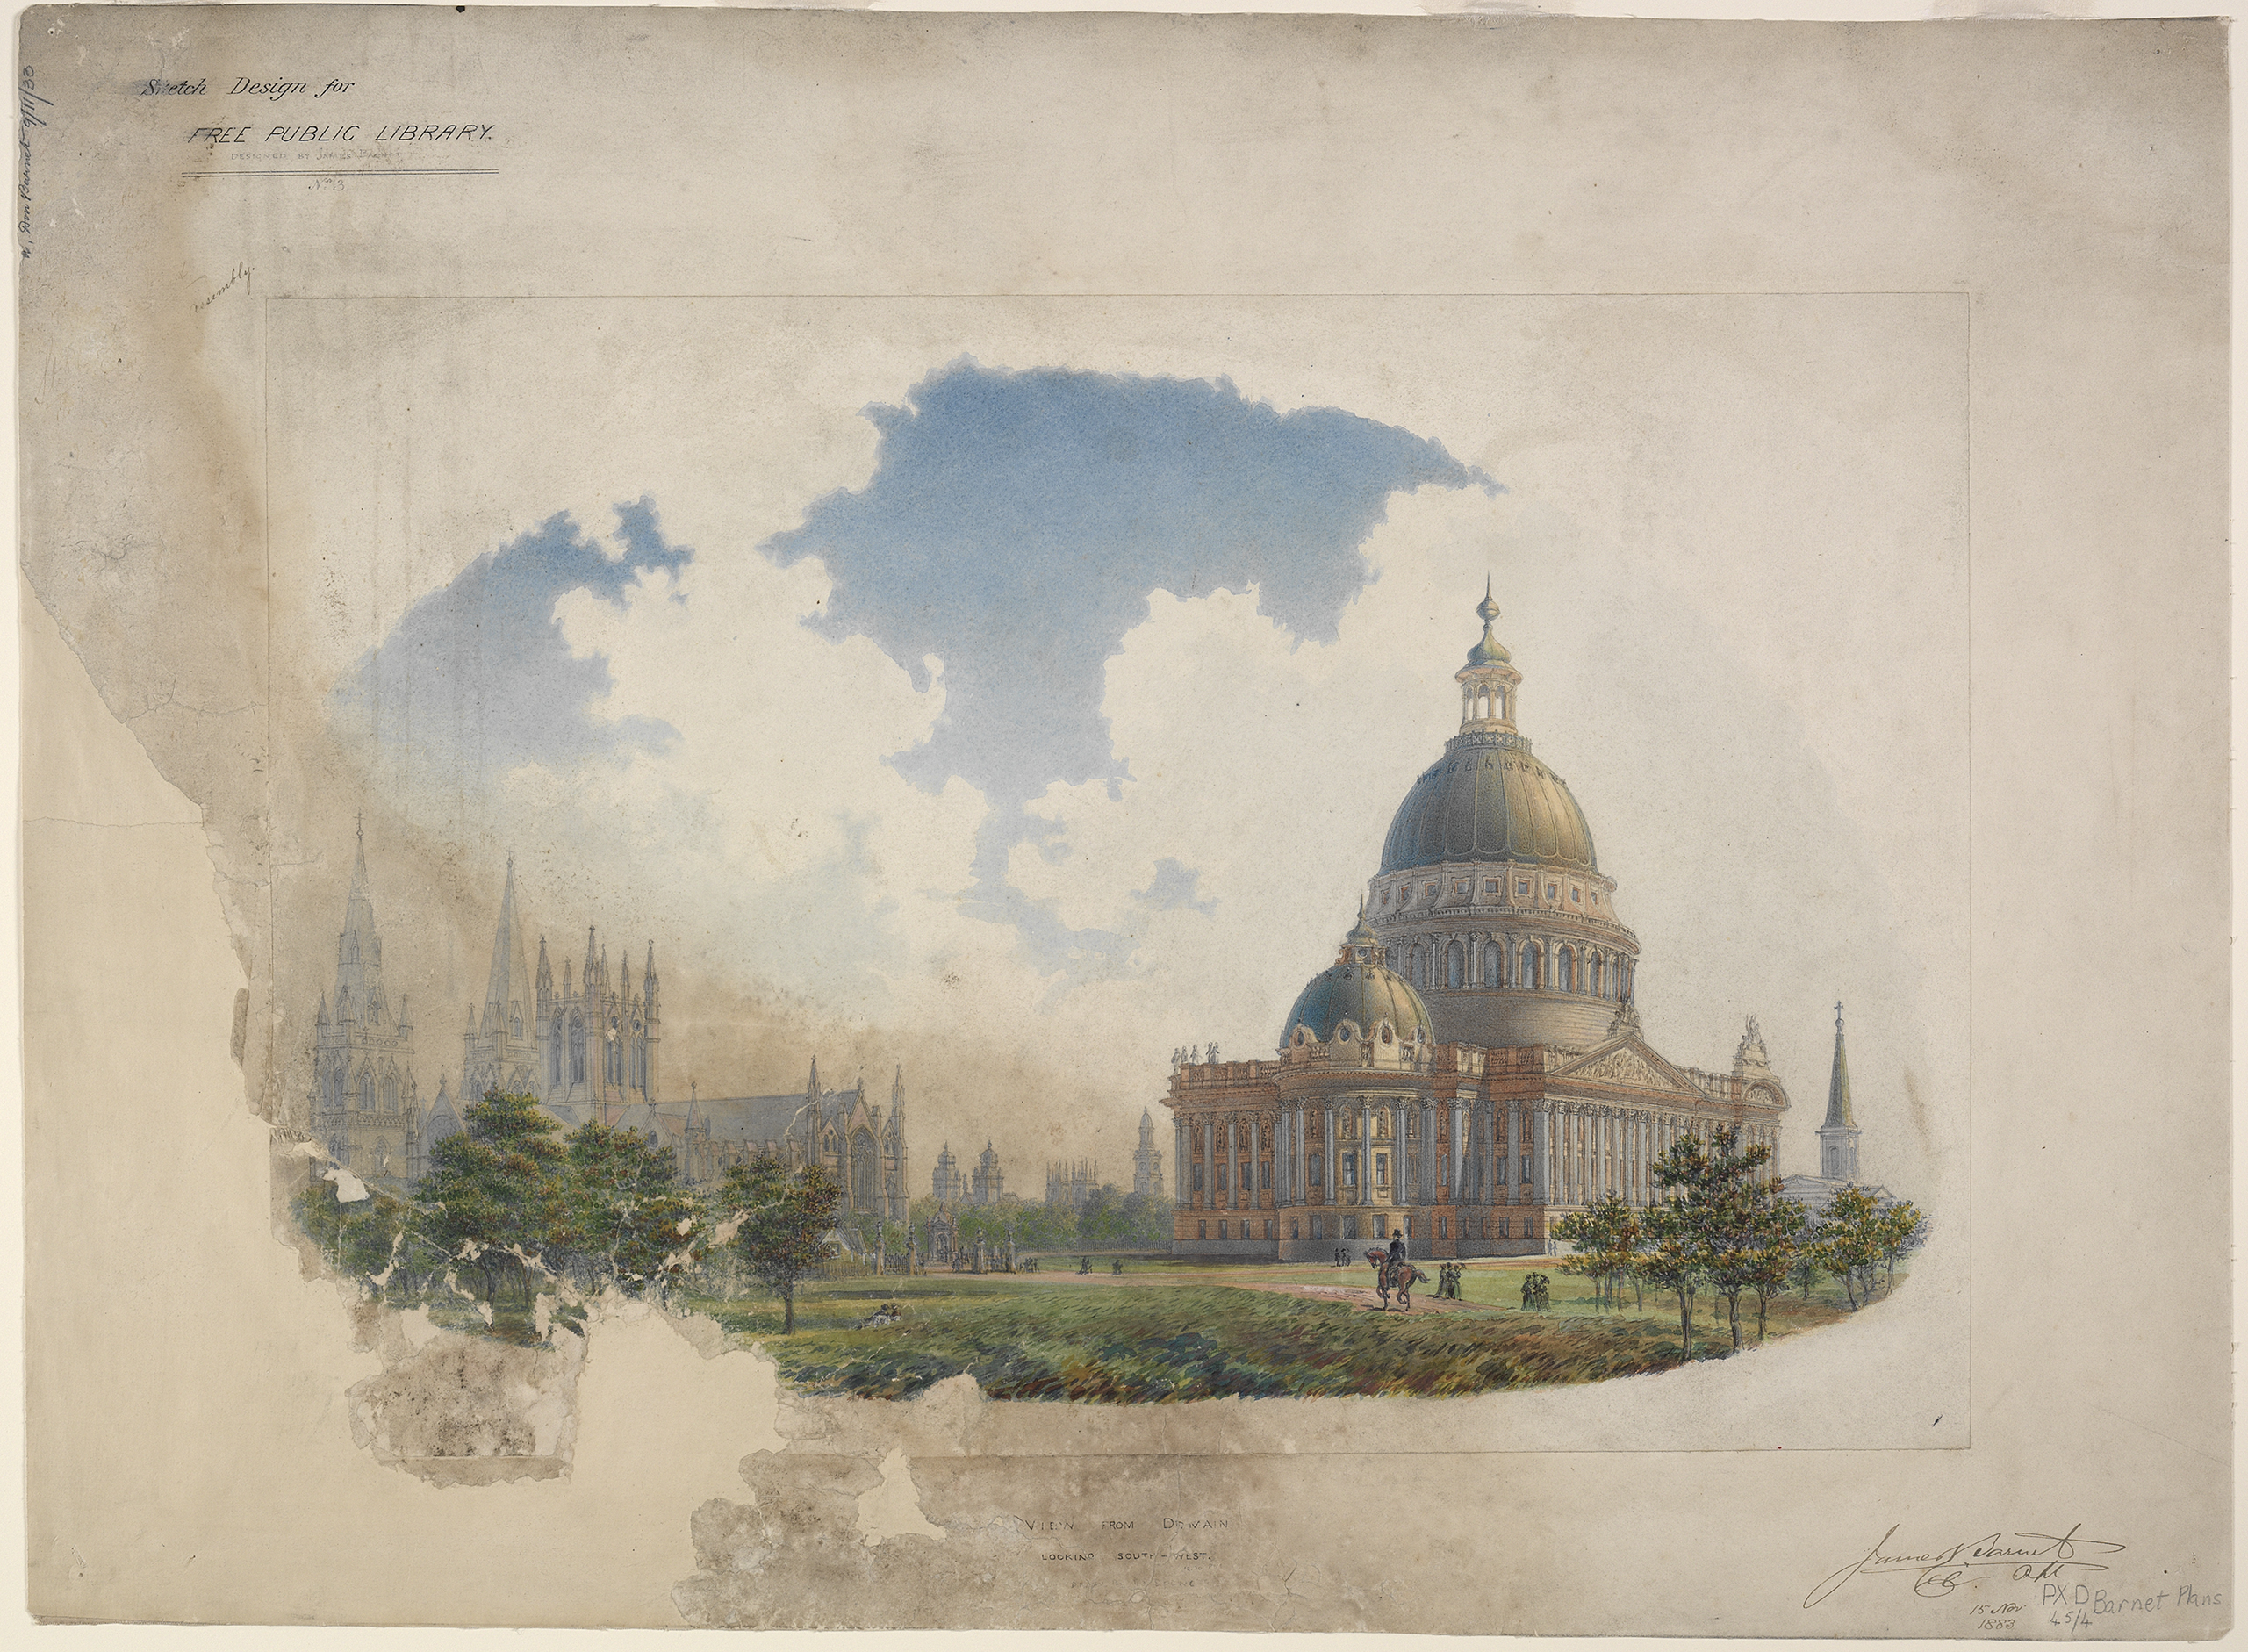 Watercolour and ink sketch of a grand domed building with St Mary's Cathedral appearing in the background and a horse rider galloping across the foreground.